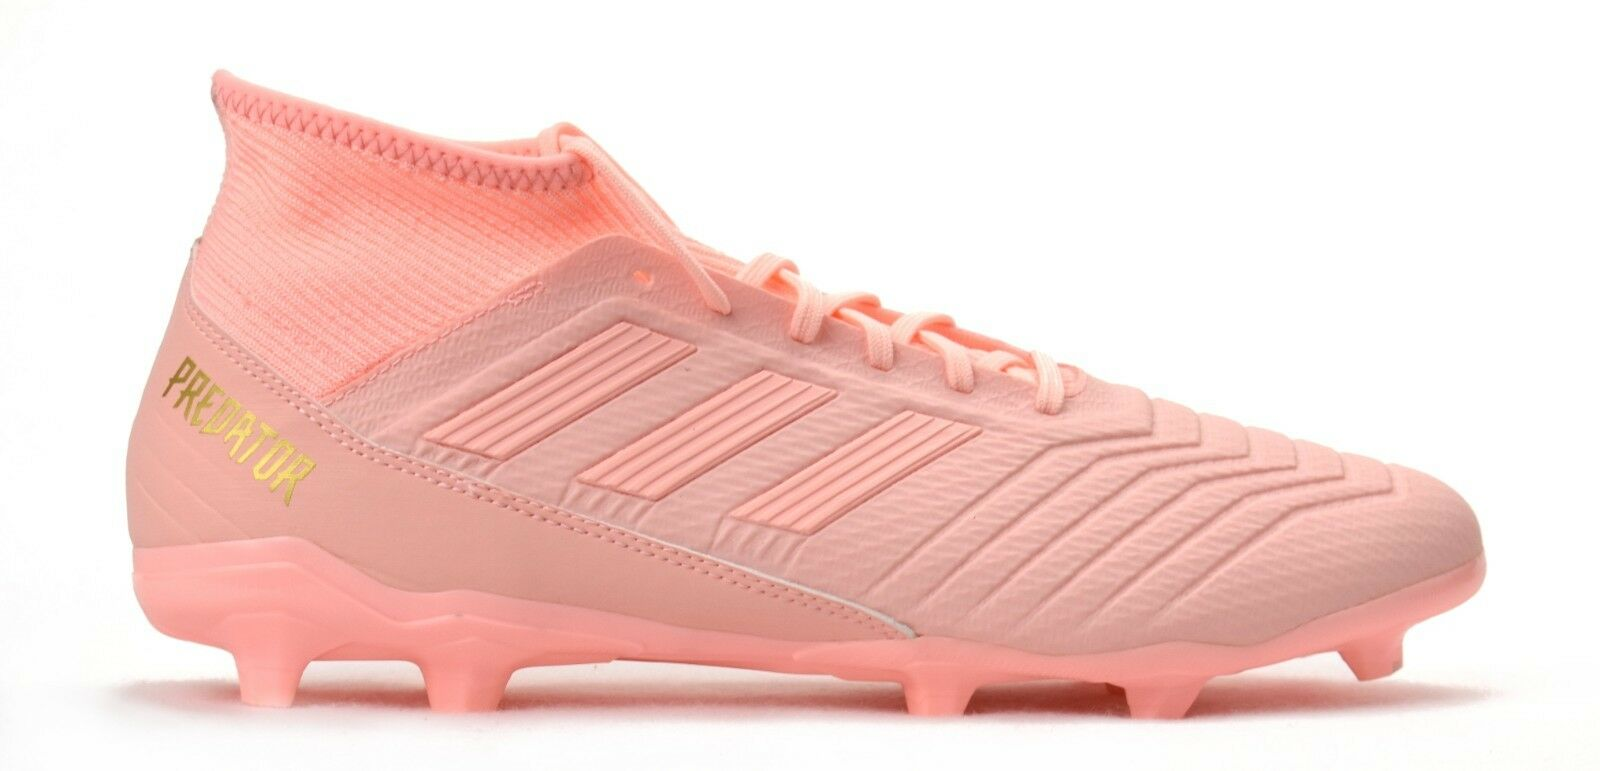 988adee32 NEW ADIDAS PREDATOR 18.3 FG MEN S SOCCER CLEATS CLEAR orange PINK FIRM  GROUND